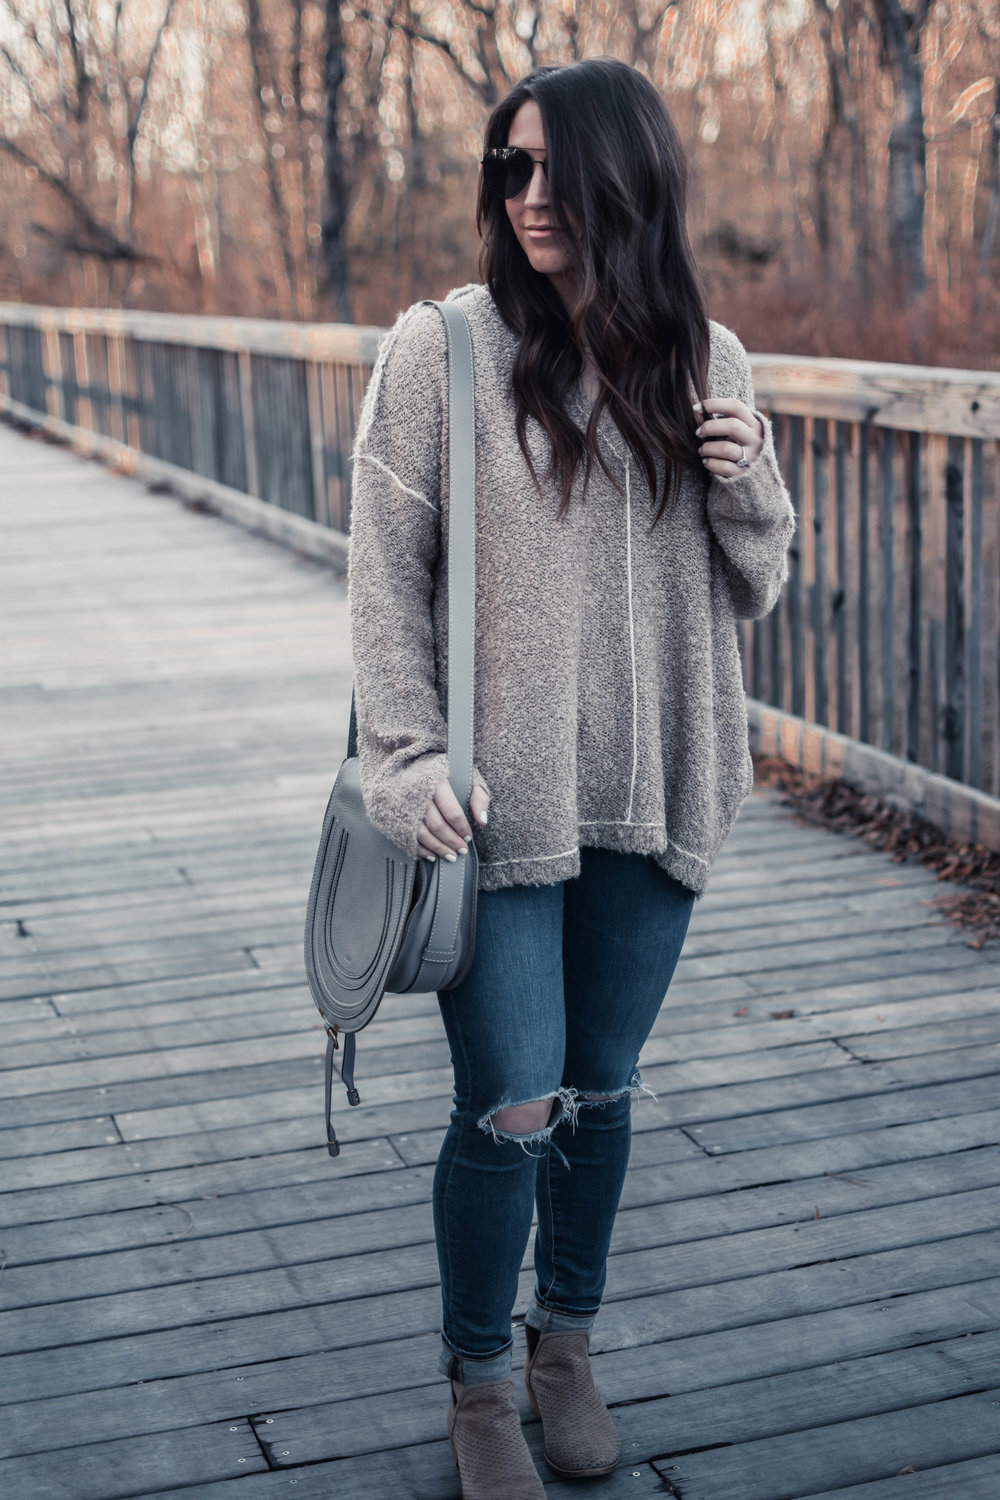 How to Dress for the Spring Transition | Pine Barren Beauty | light weight sweater, spring transition outfit idea, distressed denim, cozy vibes